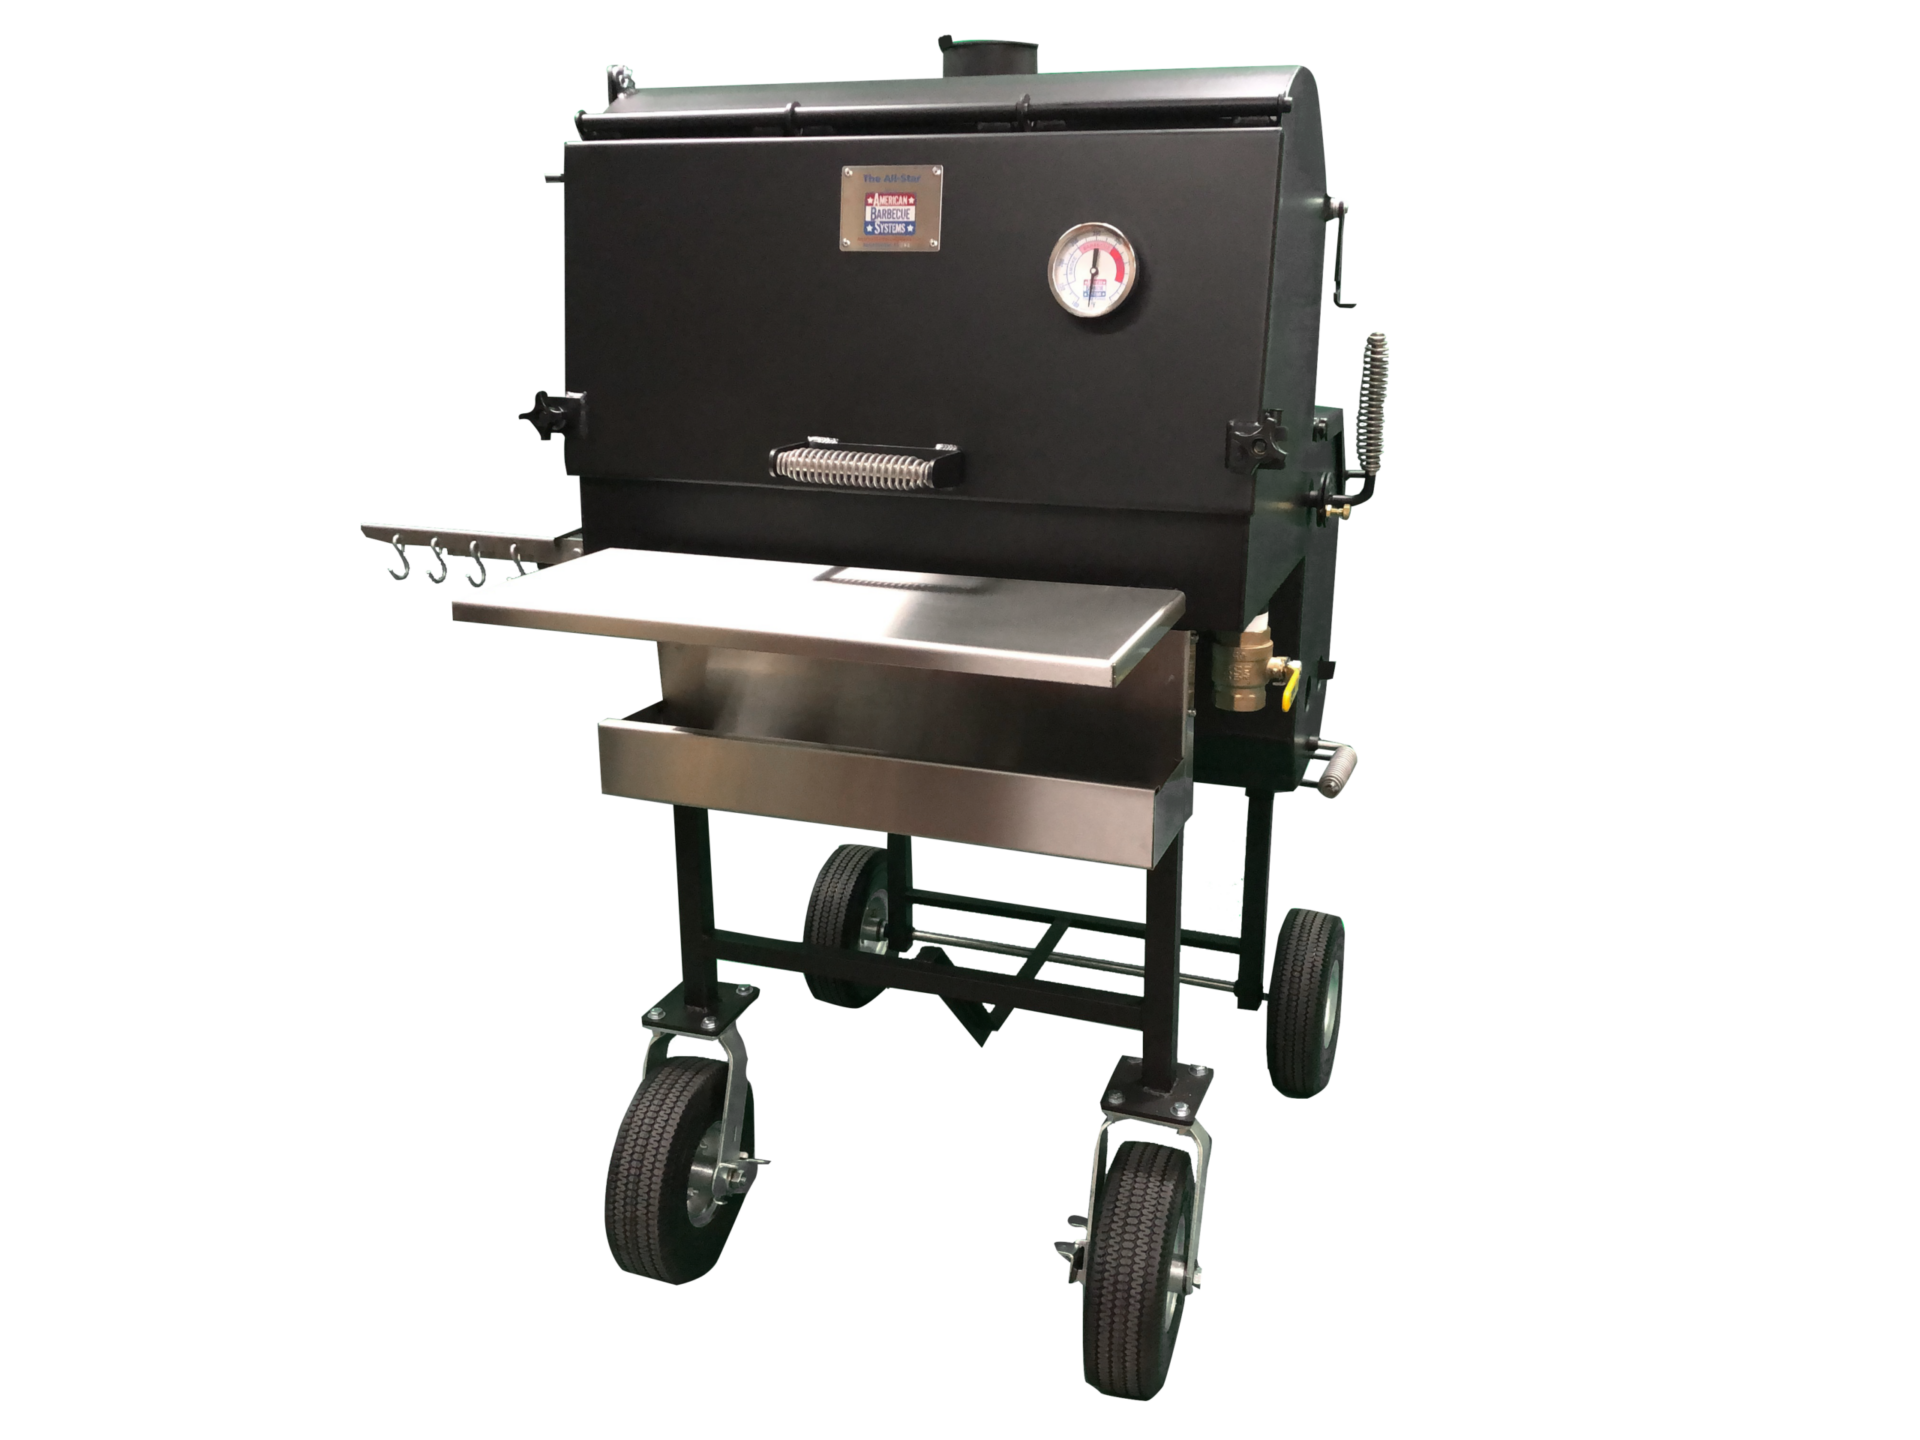 The American Barbeque Systems All-Star was designed with the backyard barbecue enthusiast in mind.